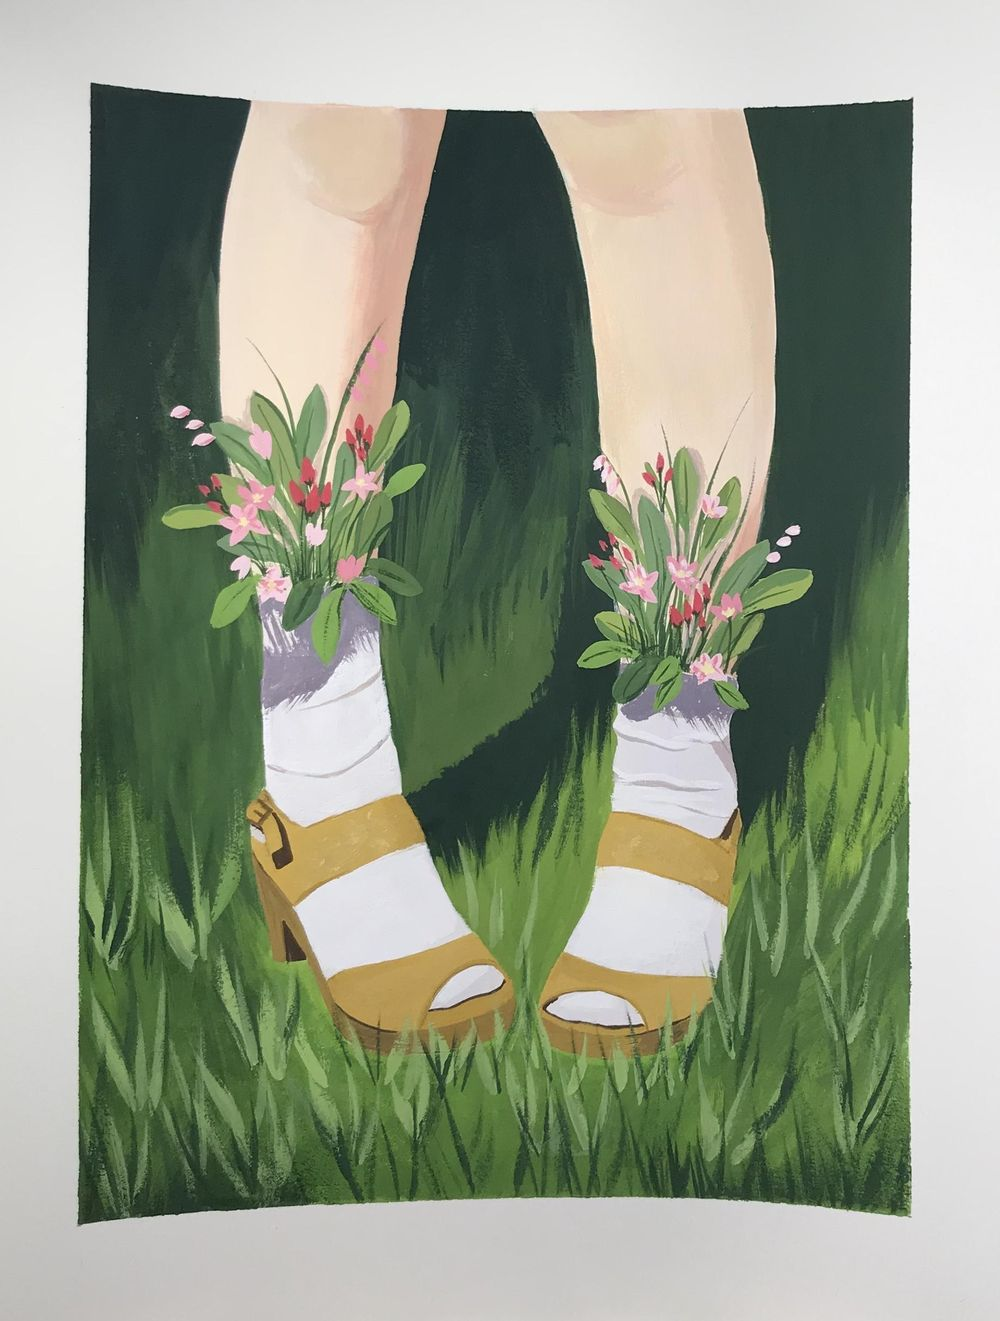 Flower Shoes - image 1 - student project